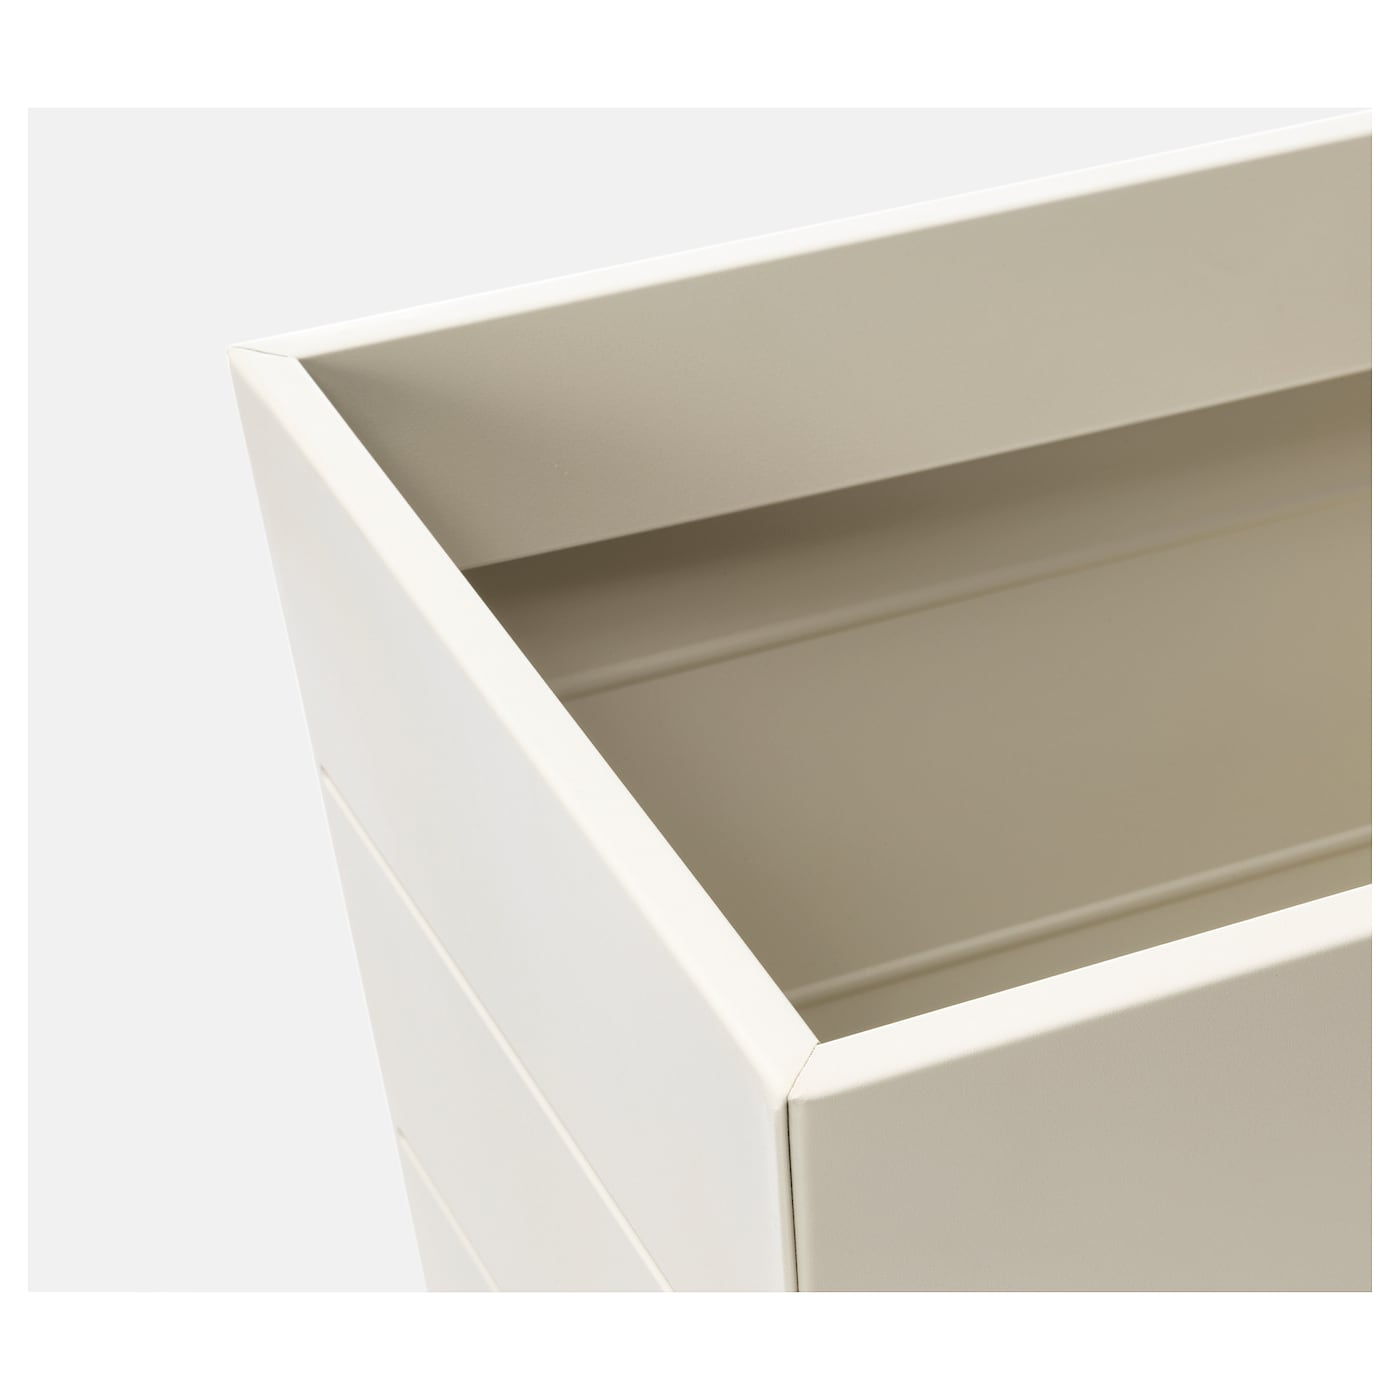 Gr set cache pot ext rieur beige 72x25 cm ikea for Cache pot exterieur